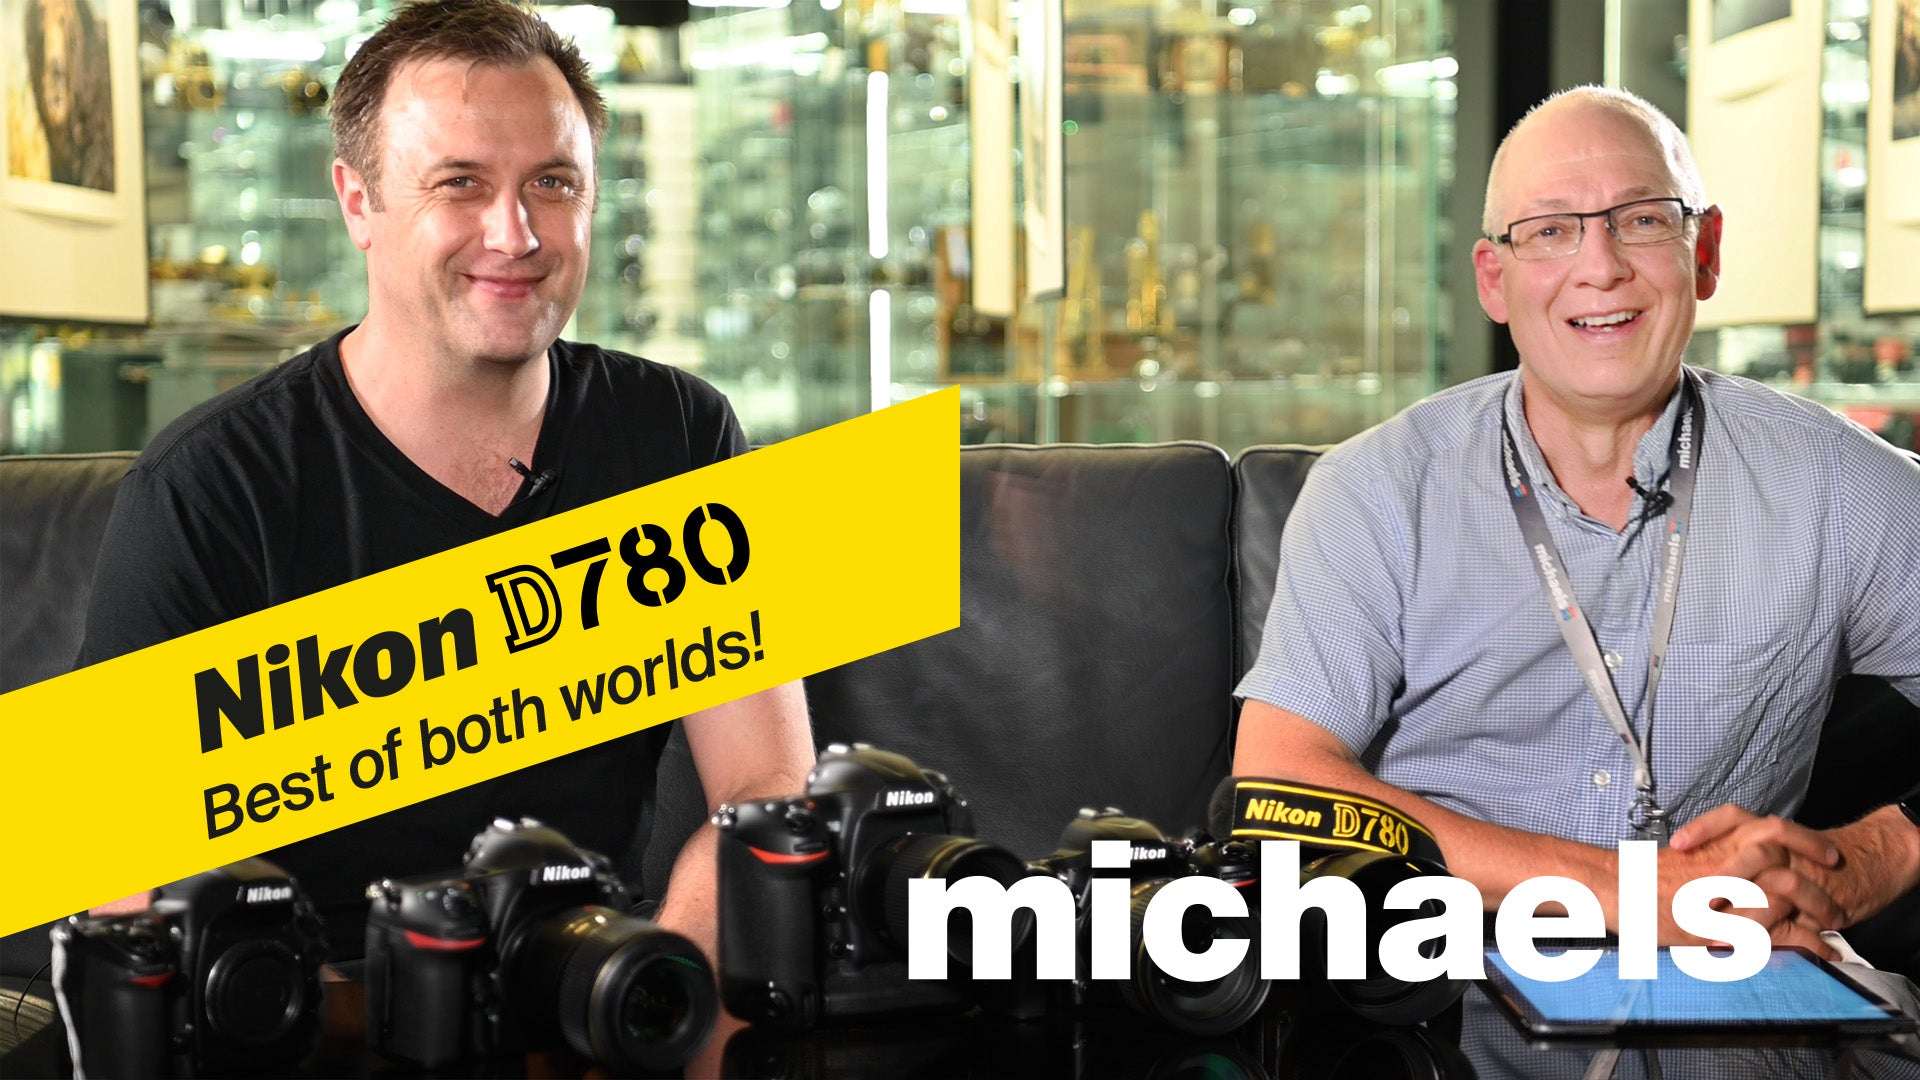 Introducing the Nikon D780 — the best of both worlds. DSLR and Mirrorless in one camera!